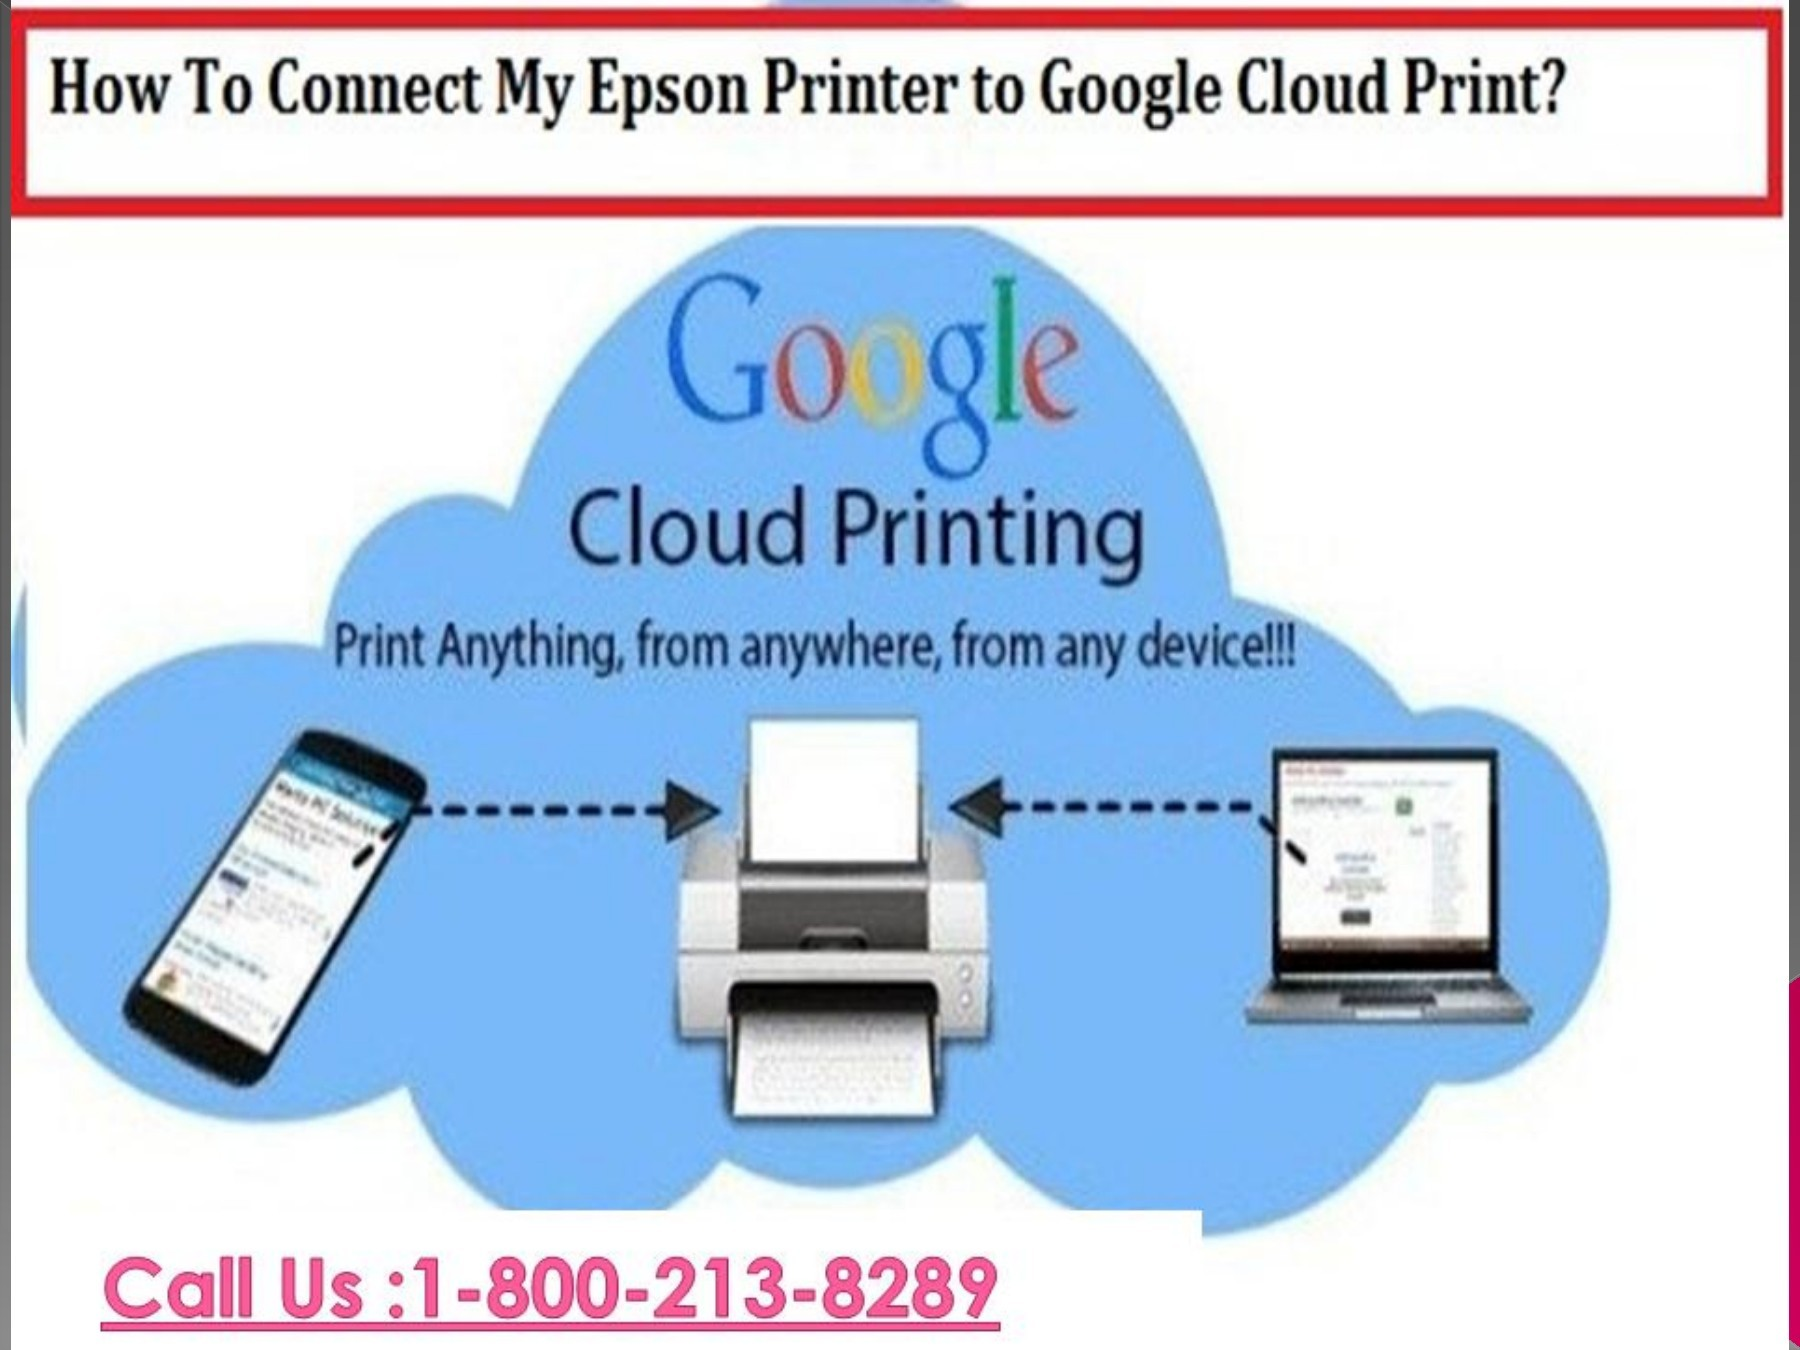 Fix Epson Printer To Google Cloud Print By Dialing 1 800 610 6962